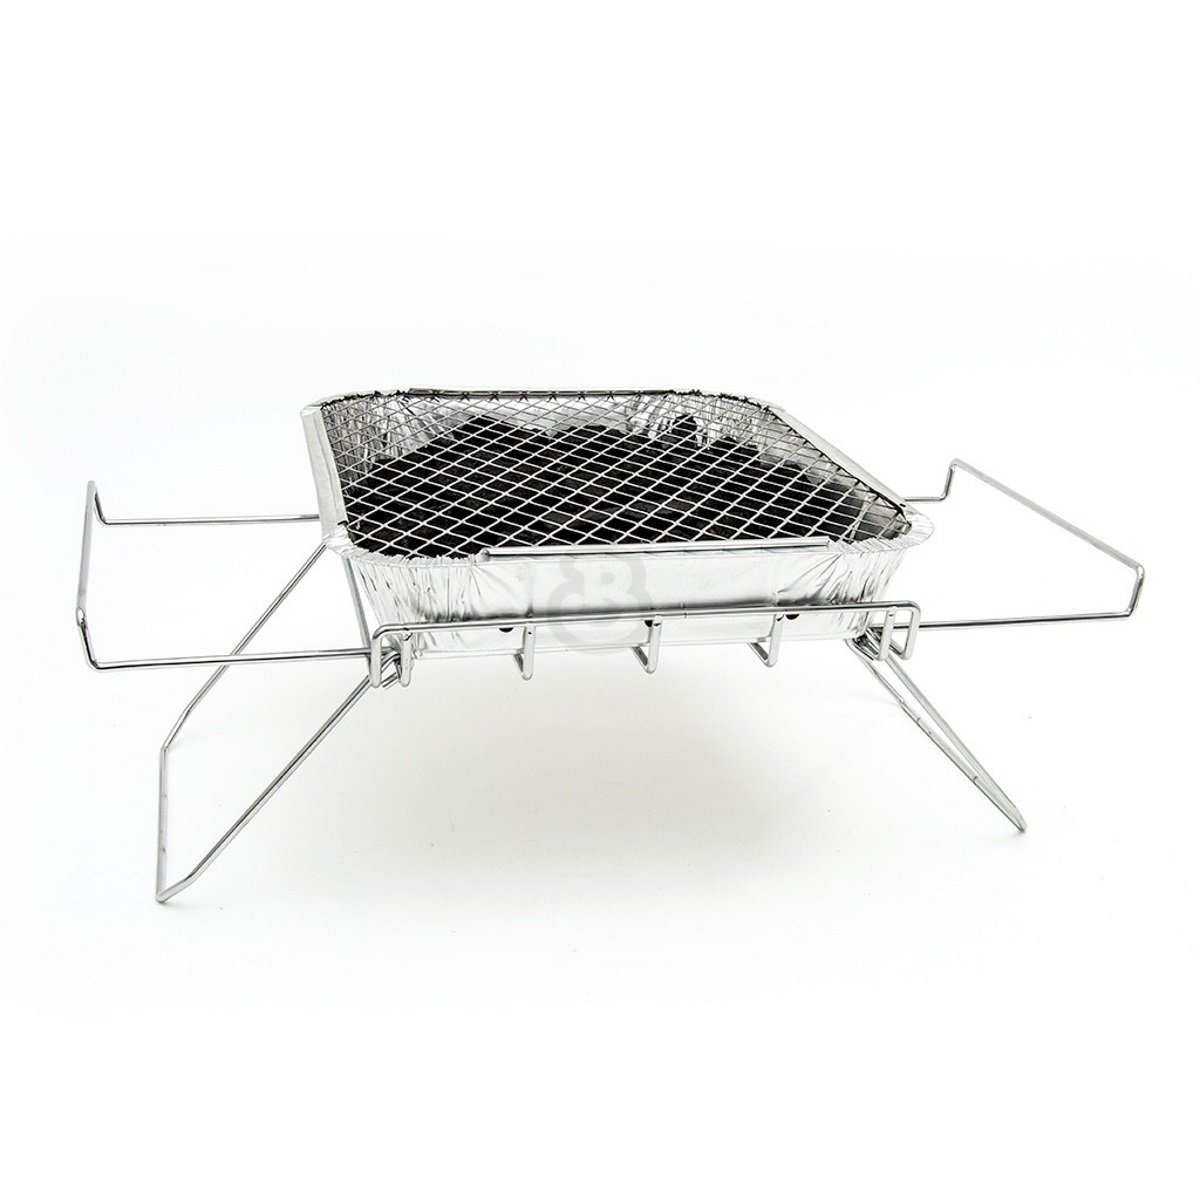 Bar Be-Quick Instant Barbecue Stand Rectella